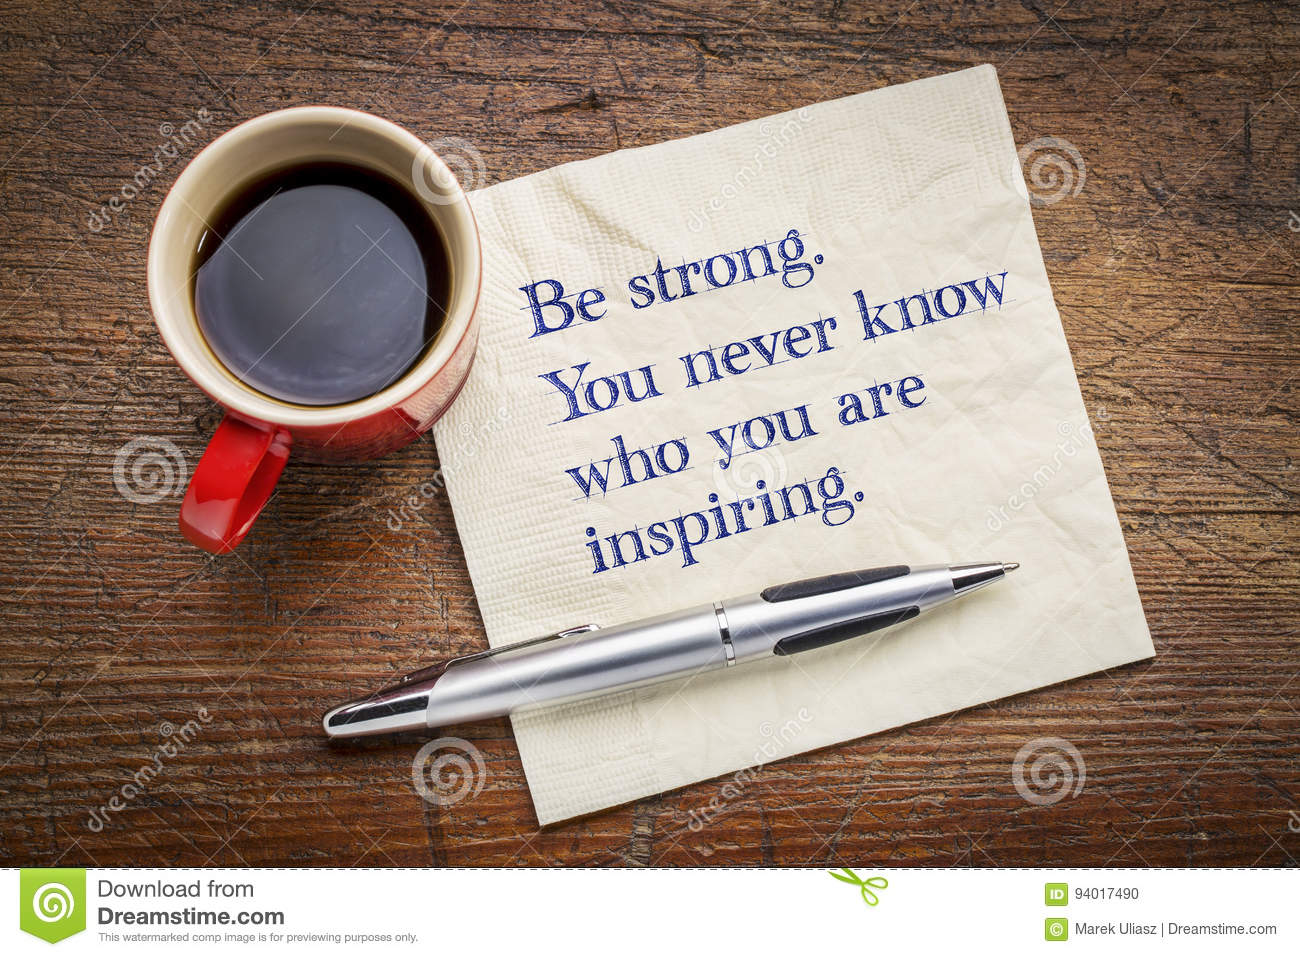 Be Strong You Never Know Who You Are Inspiring Stock Photo Image